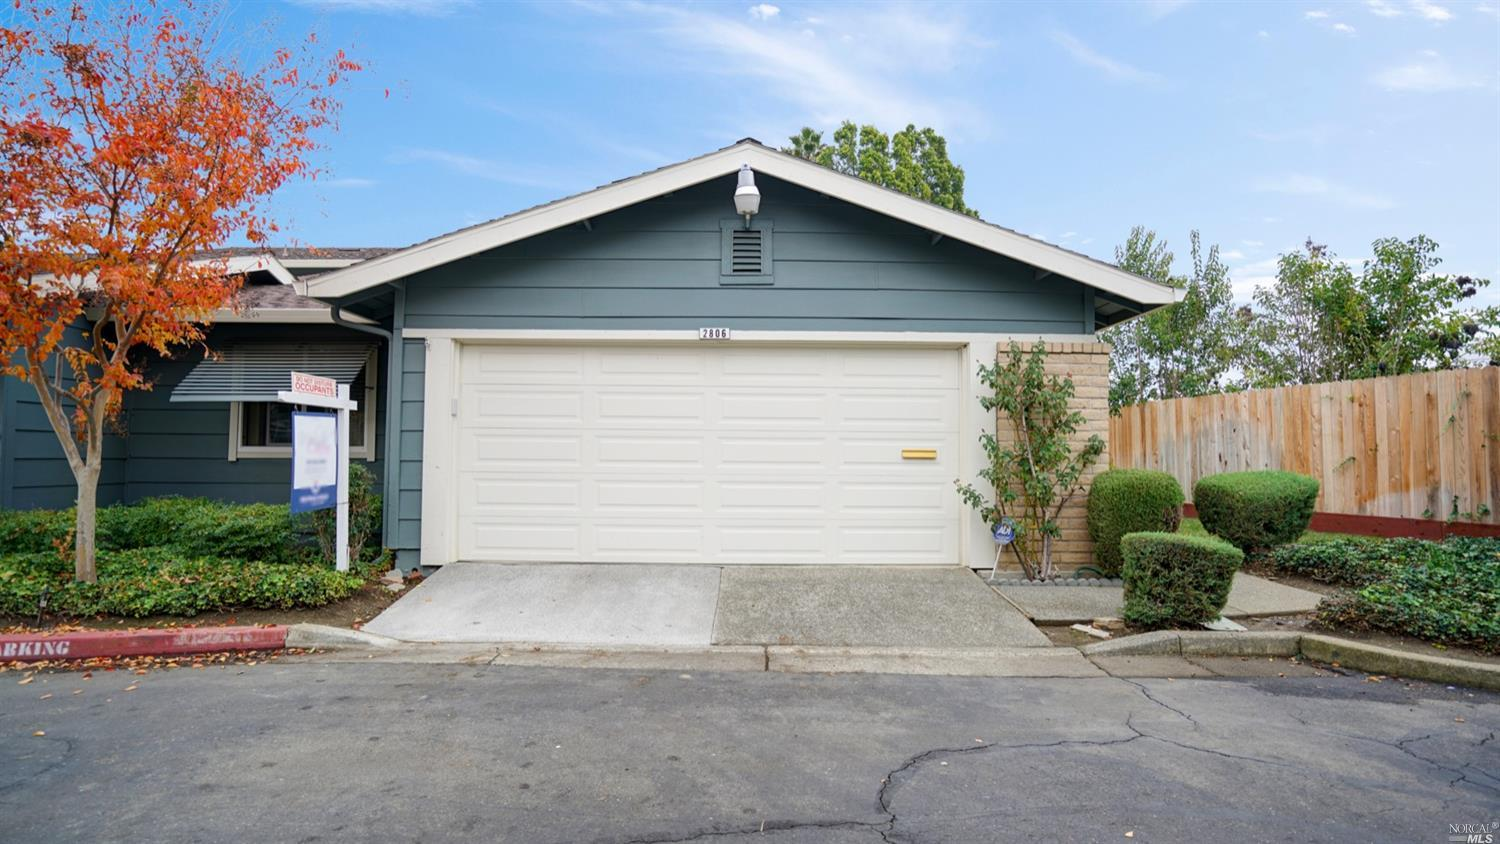 Photo of 2806 Sunburst Drive, Fairfield, CA 94533